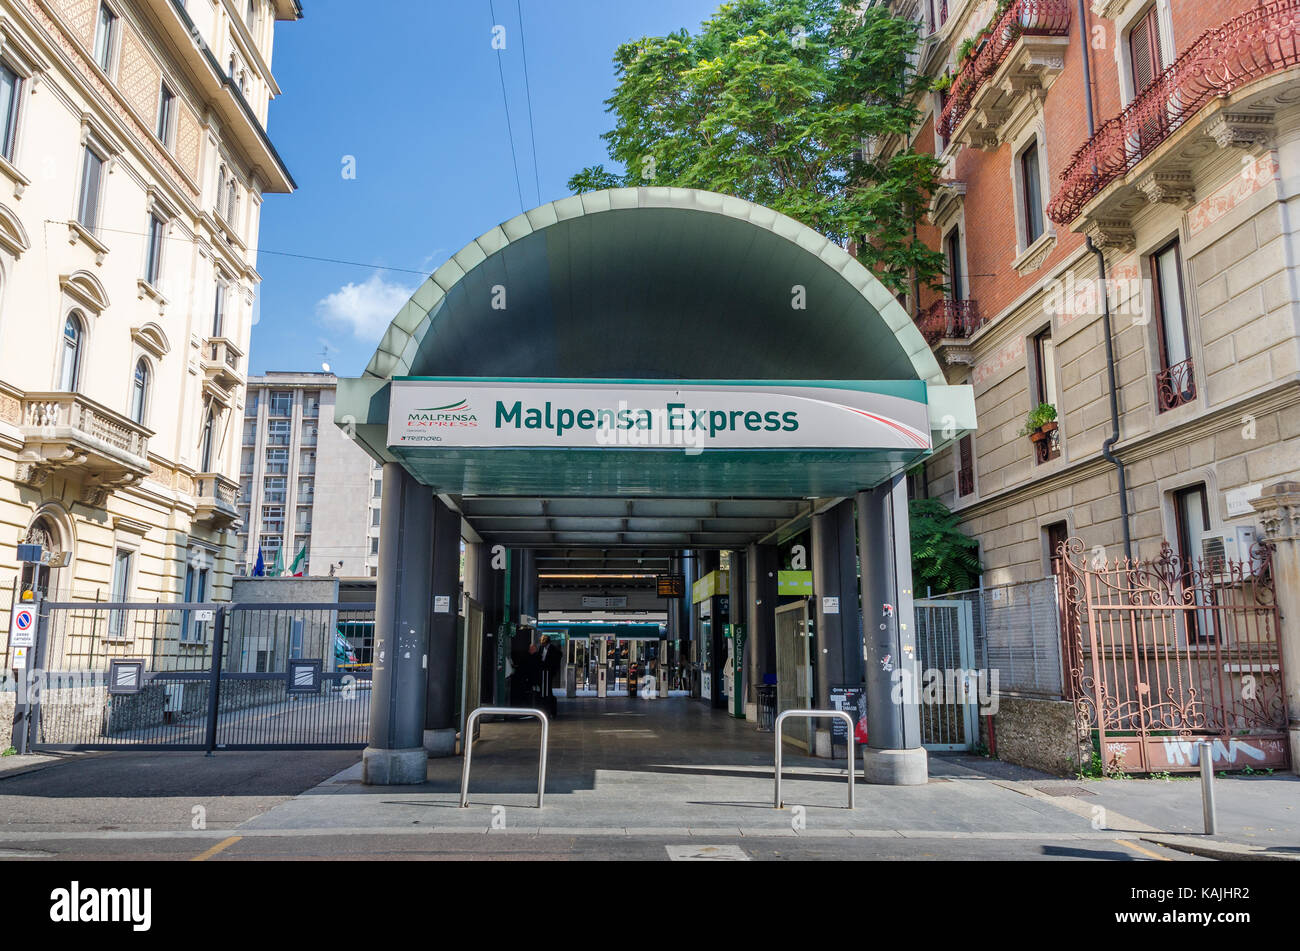 Entrance to the Malpensa Express train in Cadorna rail station in Milan, Lombardy, Italy - Stock Image